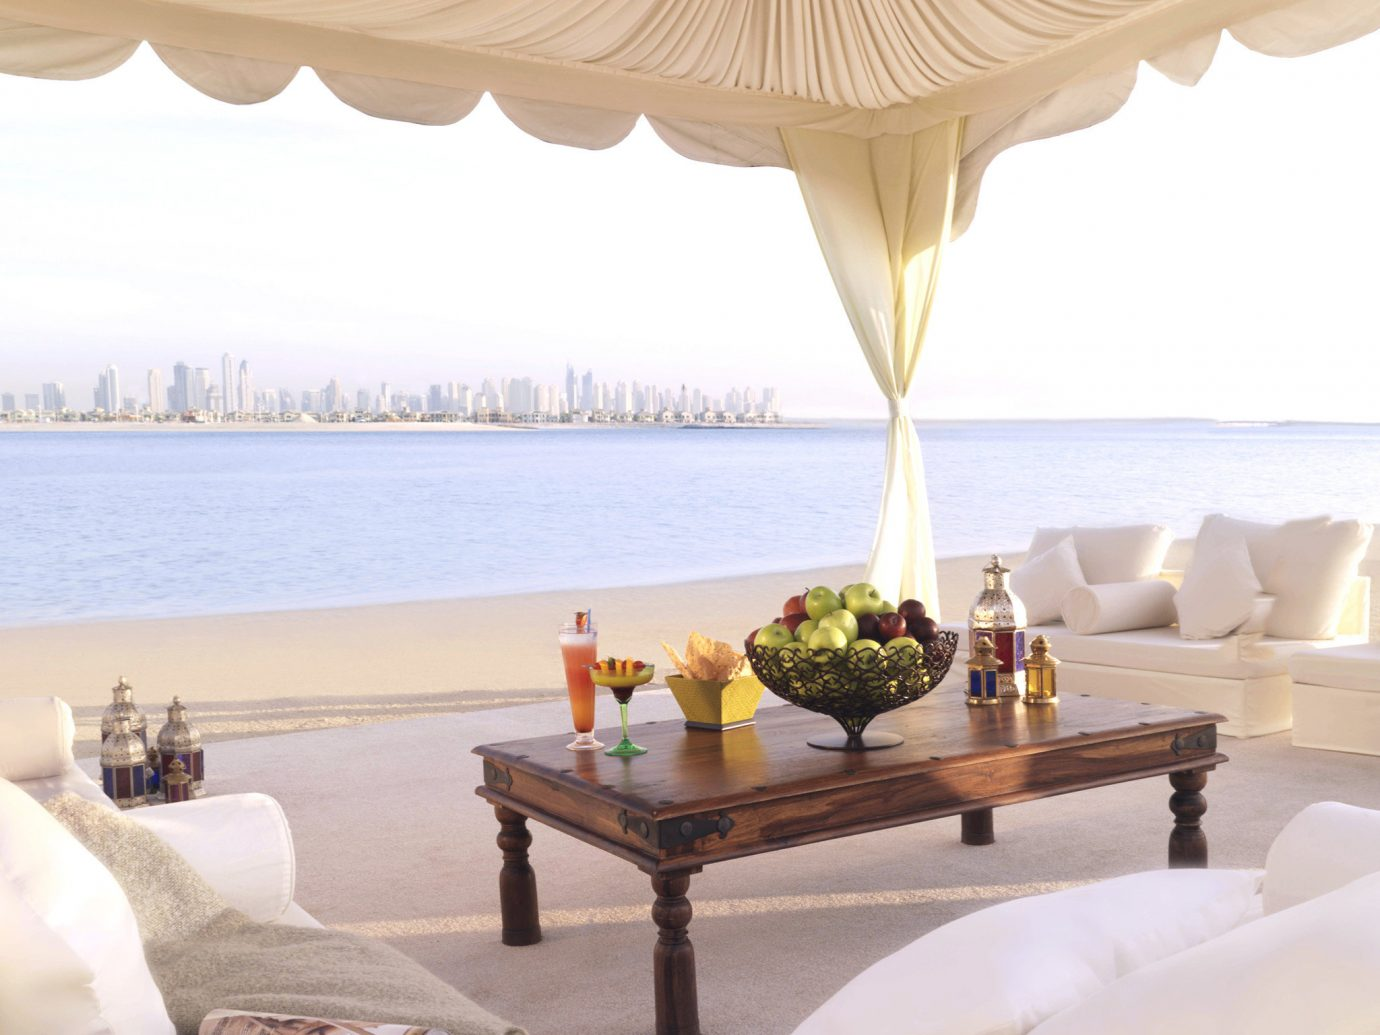 Drink Dubai Food + Drink Hotels Lounge Luxury Travel Middle East Resort Waterfront indoor room ceiling interior design living room table window covering several